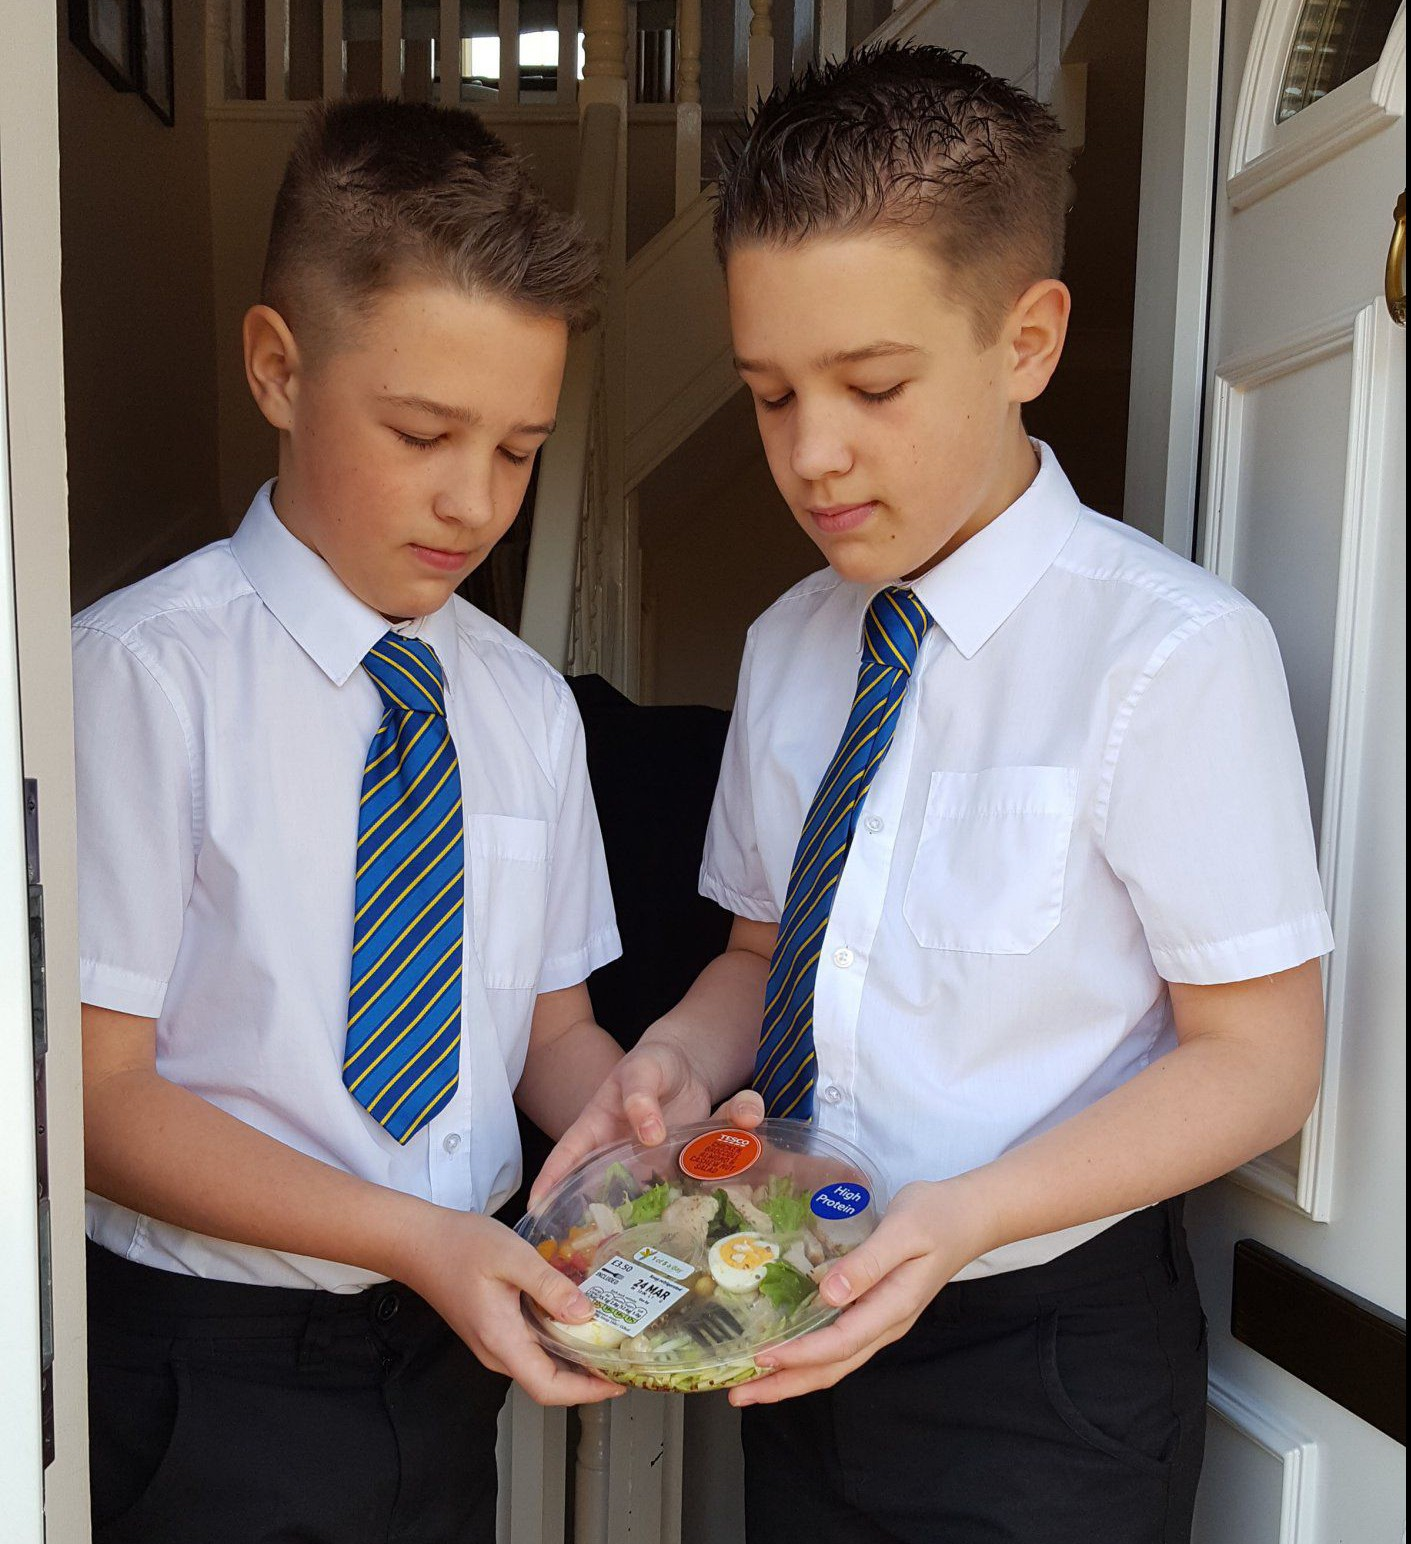 PIC FROM MERCURY PRESS (PICTURED: MATTHEW AND JAMES BAYLEY, 12, WITH THE ROAST CHICKEN & BROCCOLI SALAD THAT WAS DELIVERED TO THEM INSTEAD OF THE TWO EASTER EGGS THEIR MOTHER JOANNE BAYLEY HAD ORDERED) A mum claims a supermarket could be taking their ëhealthy eatingí drive too far ñ when she ordered her twin boys two Easter eggs but was delivered a SALAD. Joanne Bayley, 41, had treated 12-year-old twins Matthew and James to a Cadburyís Mini Eggs extra large egg each at a total price of £8.00 on her online shop with Tesco. However Joanne, who works in accounts, was left baffled when the supermarket giant switched the two eggs to a single roast chicken and broccoli salad for £3.50. Soon enough the twins heard about their mumís recent purchase and were asking Joanne if they were really going to be getting a salad for Easter. SEE MERCURY COPY